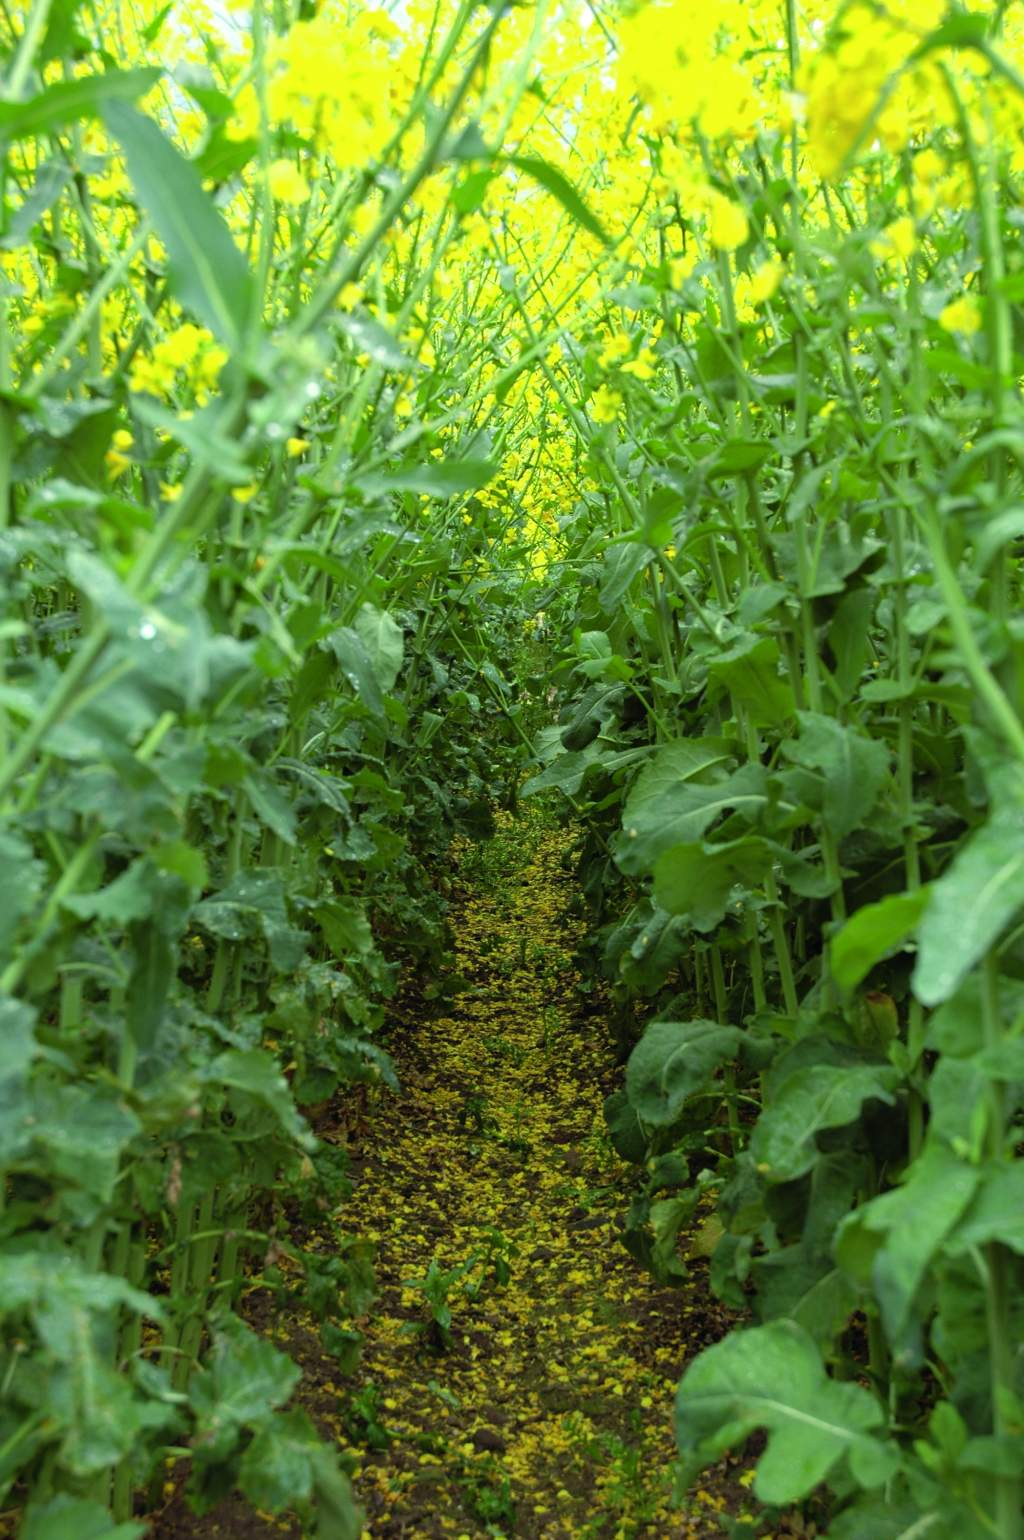 Sclerotinia protection at petal fall helps retain light capturing green leaf area for longer.